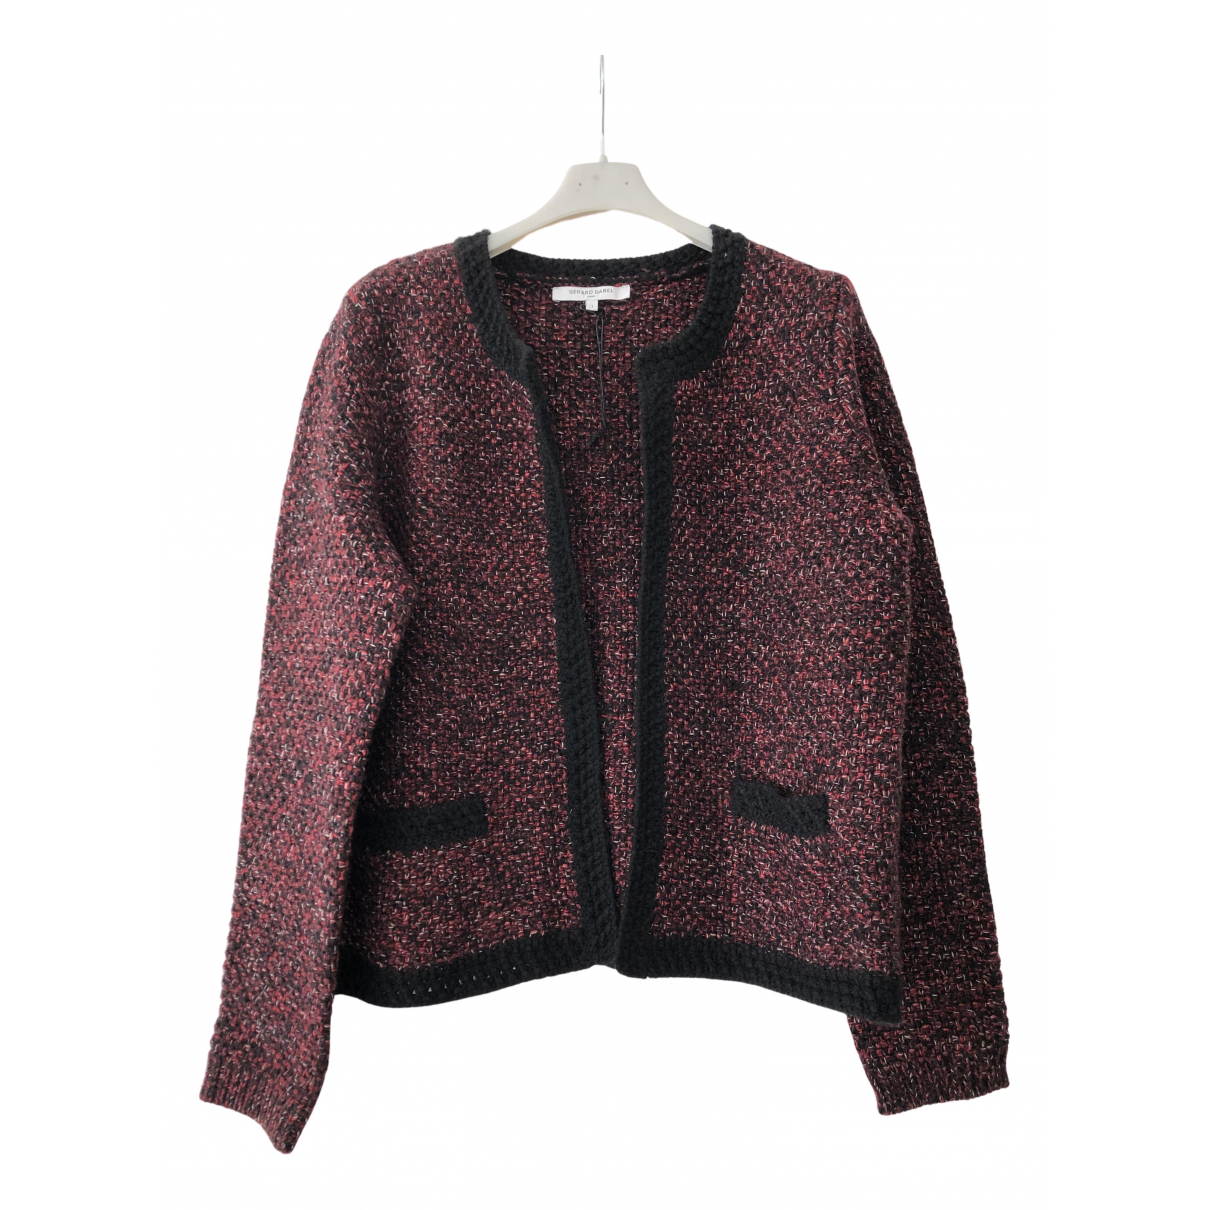 Gerard Darel N Wool jacket for Women 1 0-5